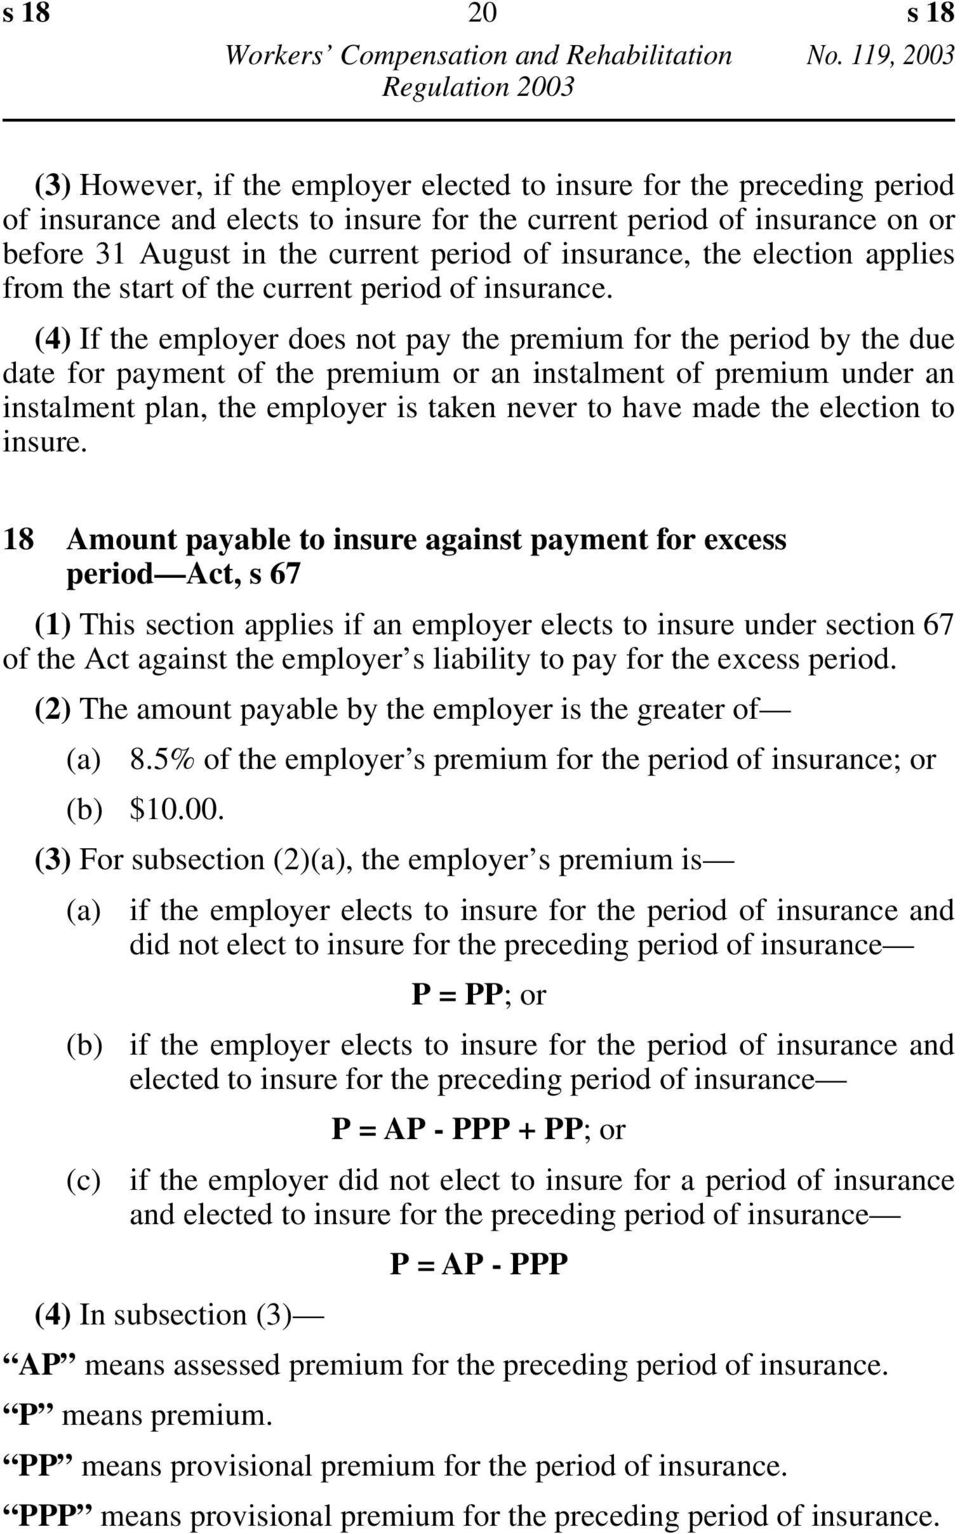 (4) If the employer does not pay the premium for the period by the due date for payment of the premium or an instalment of premium under an instalment plan, the employer is taken never to have made